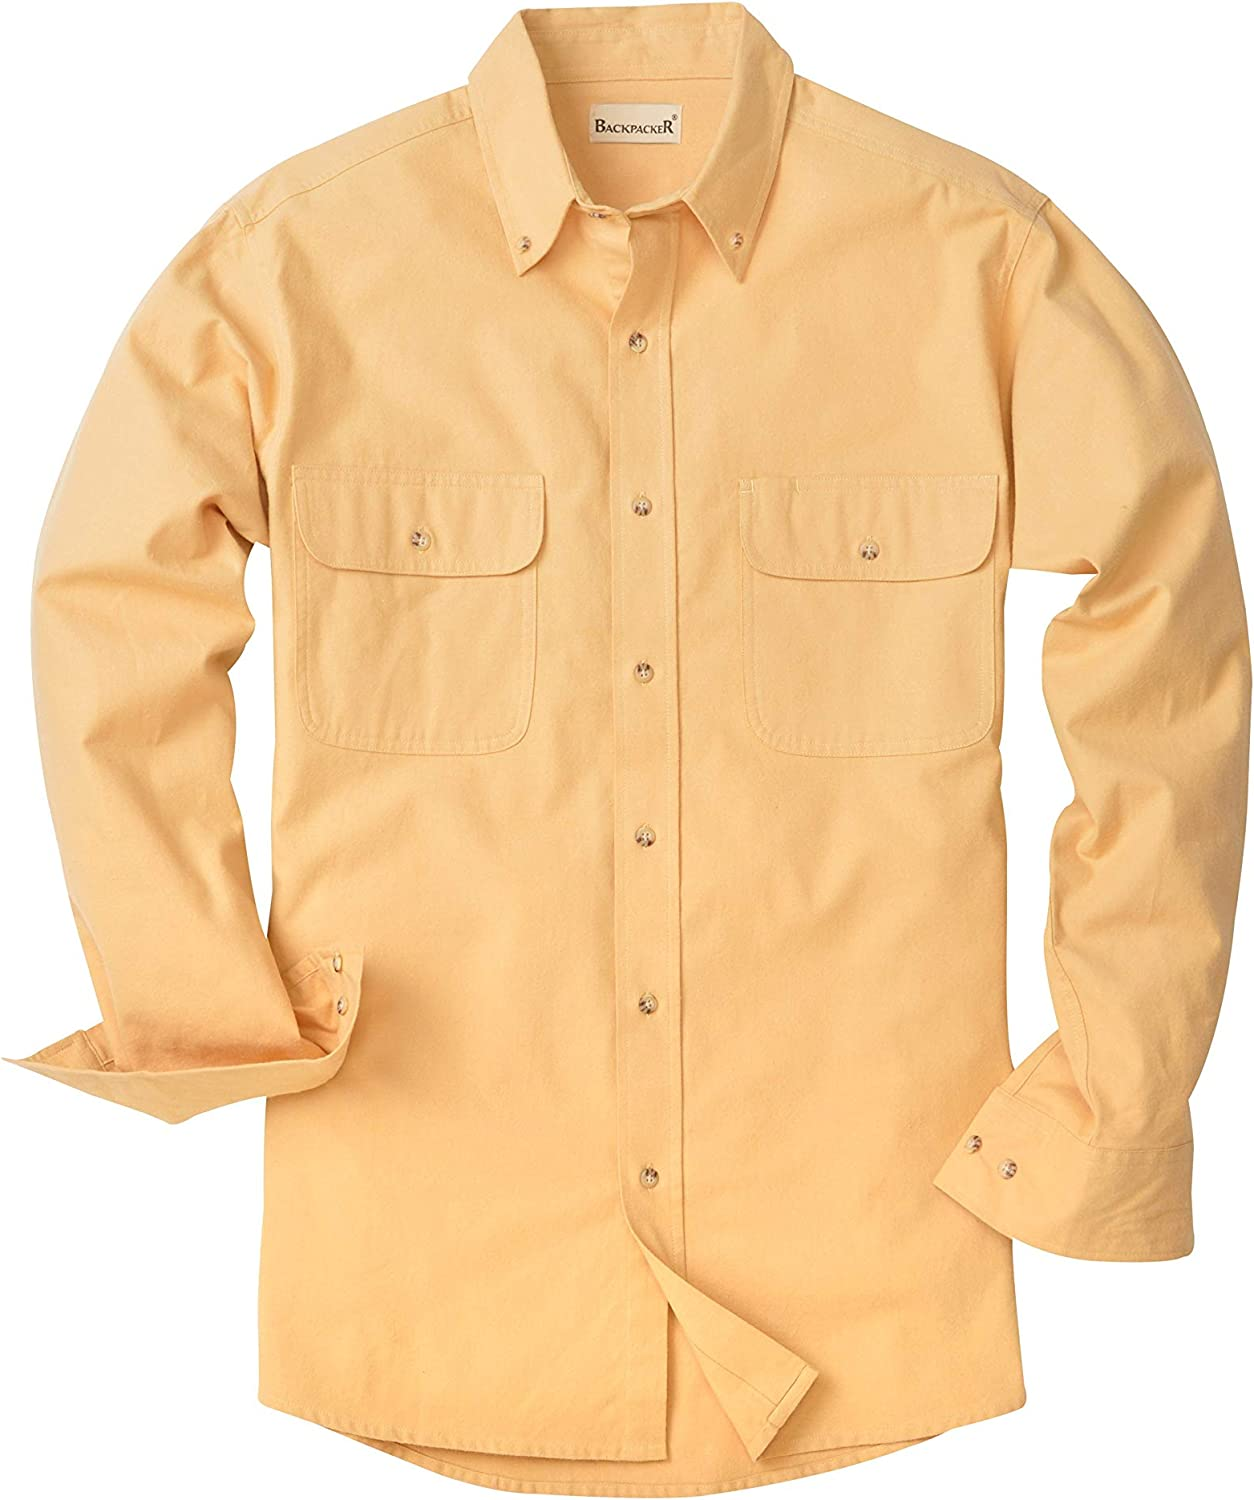 Backpacker Mens Solid Flannel Shirt